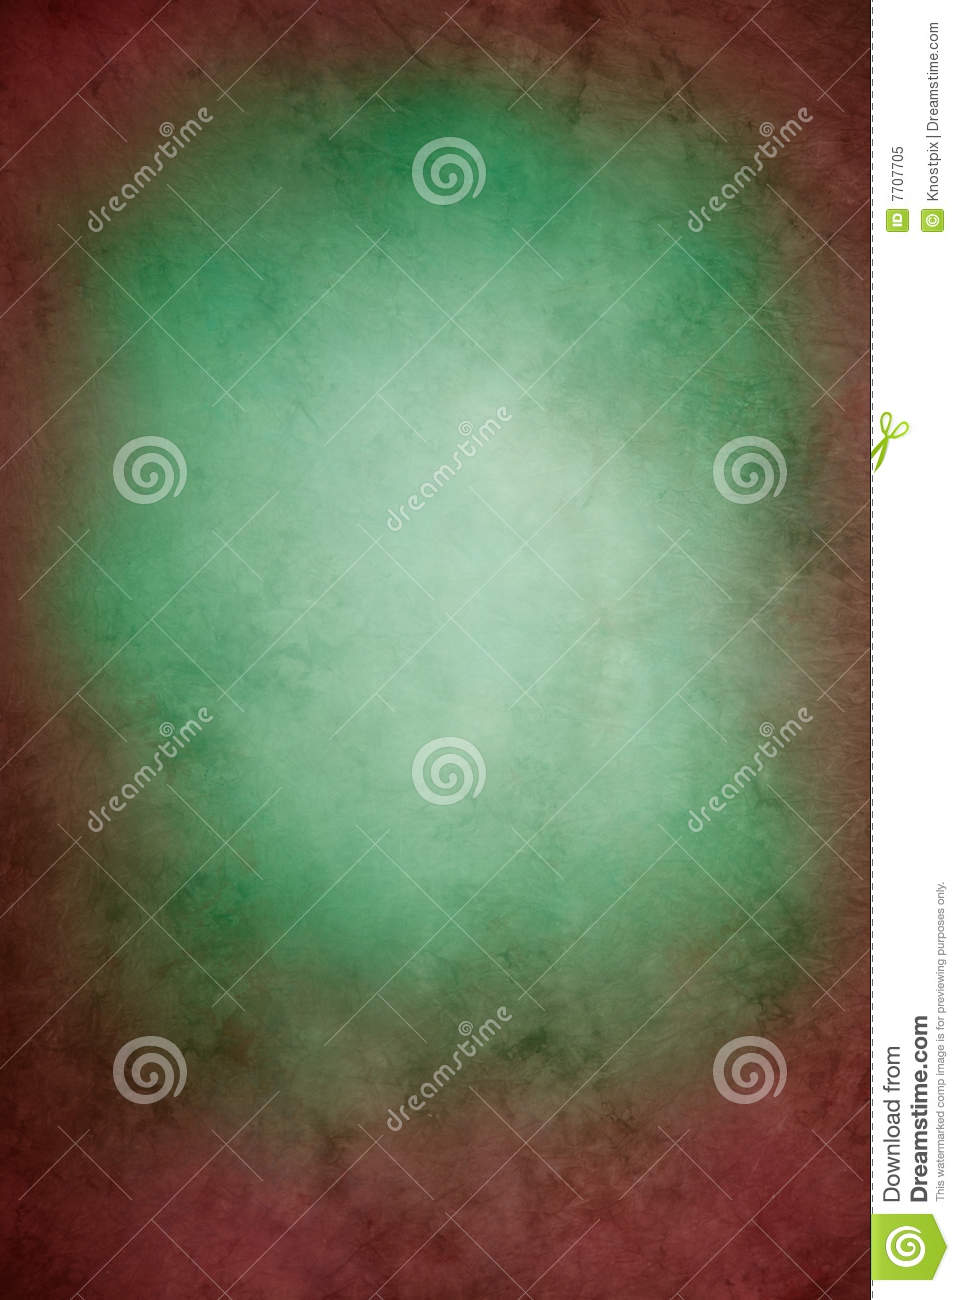 Cloth Studio Backdrop Or Background Royalty Free Stock Photo - Image ...